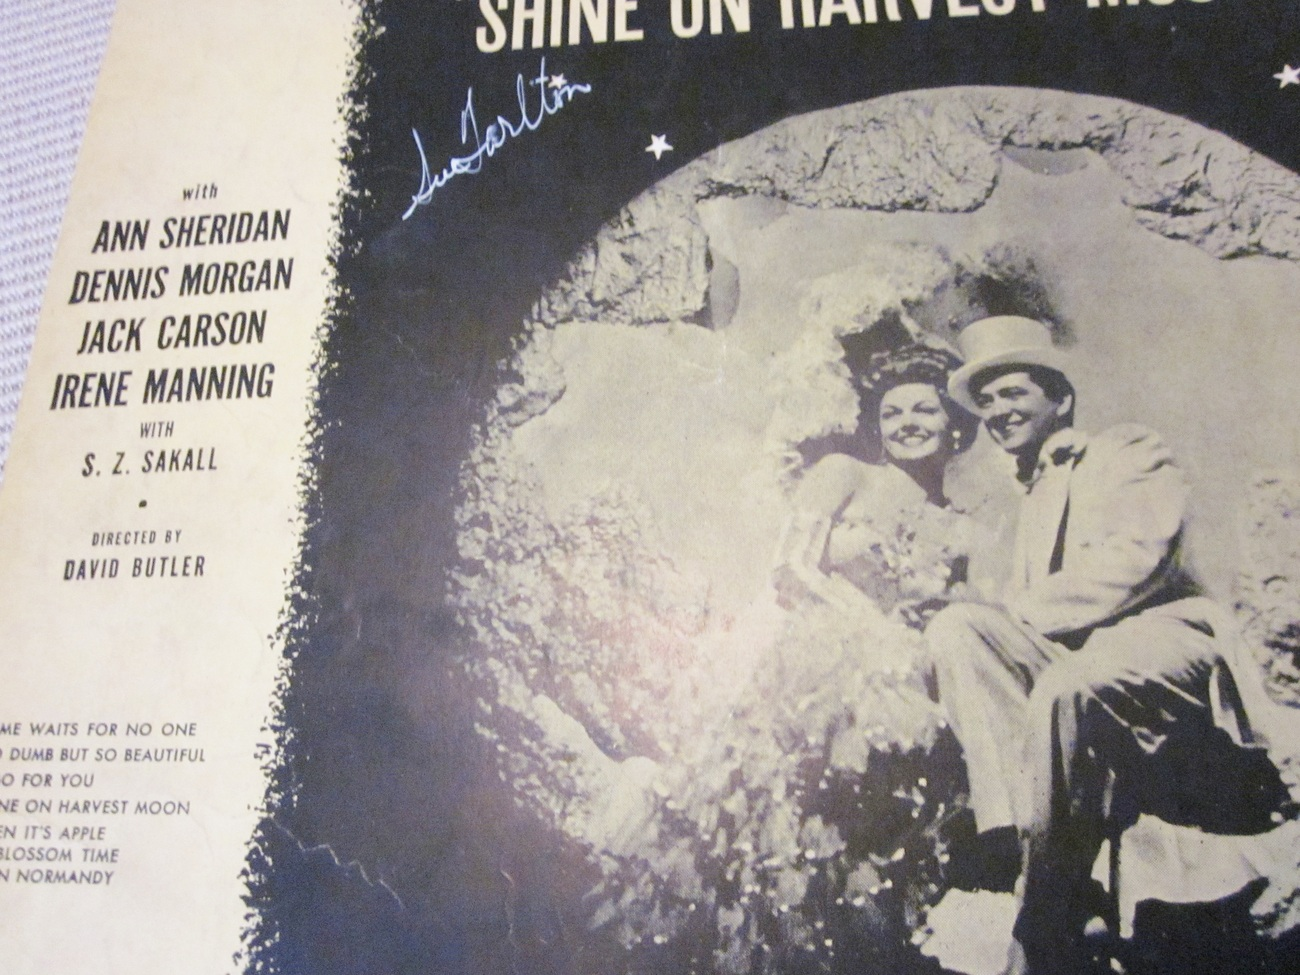 Vintage Sheet Music Time Waits For No One by Friend and Tobias